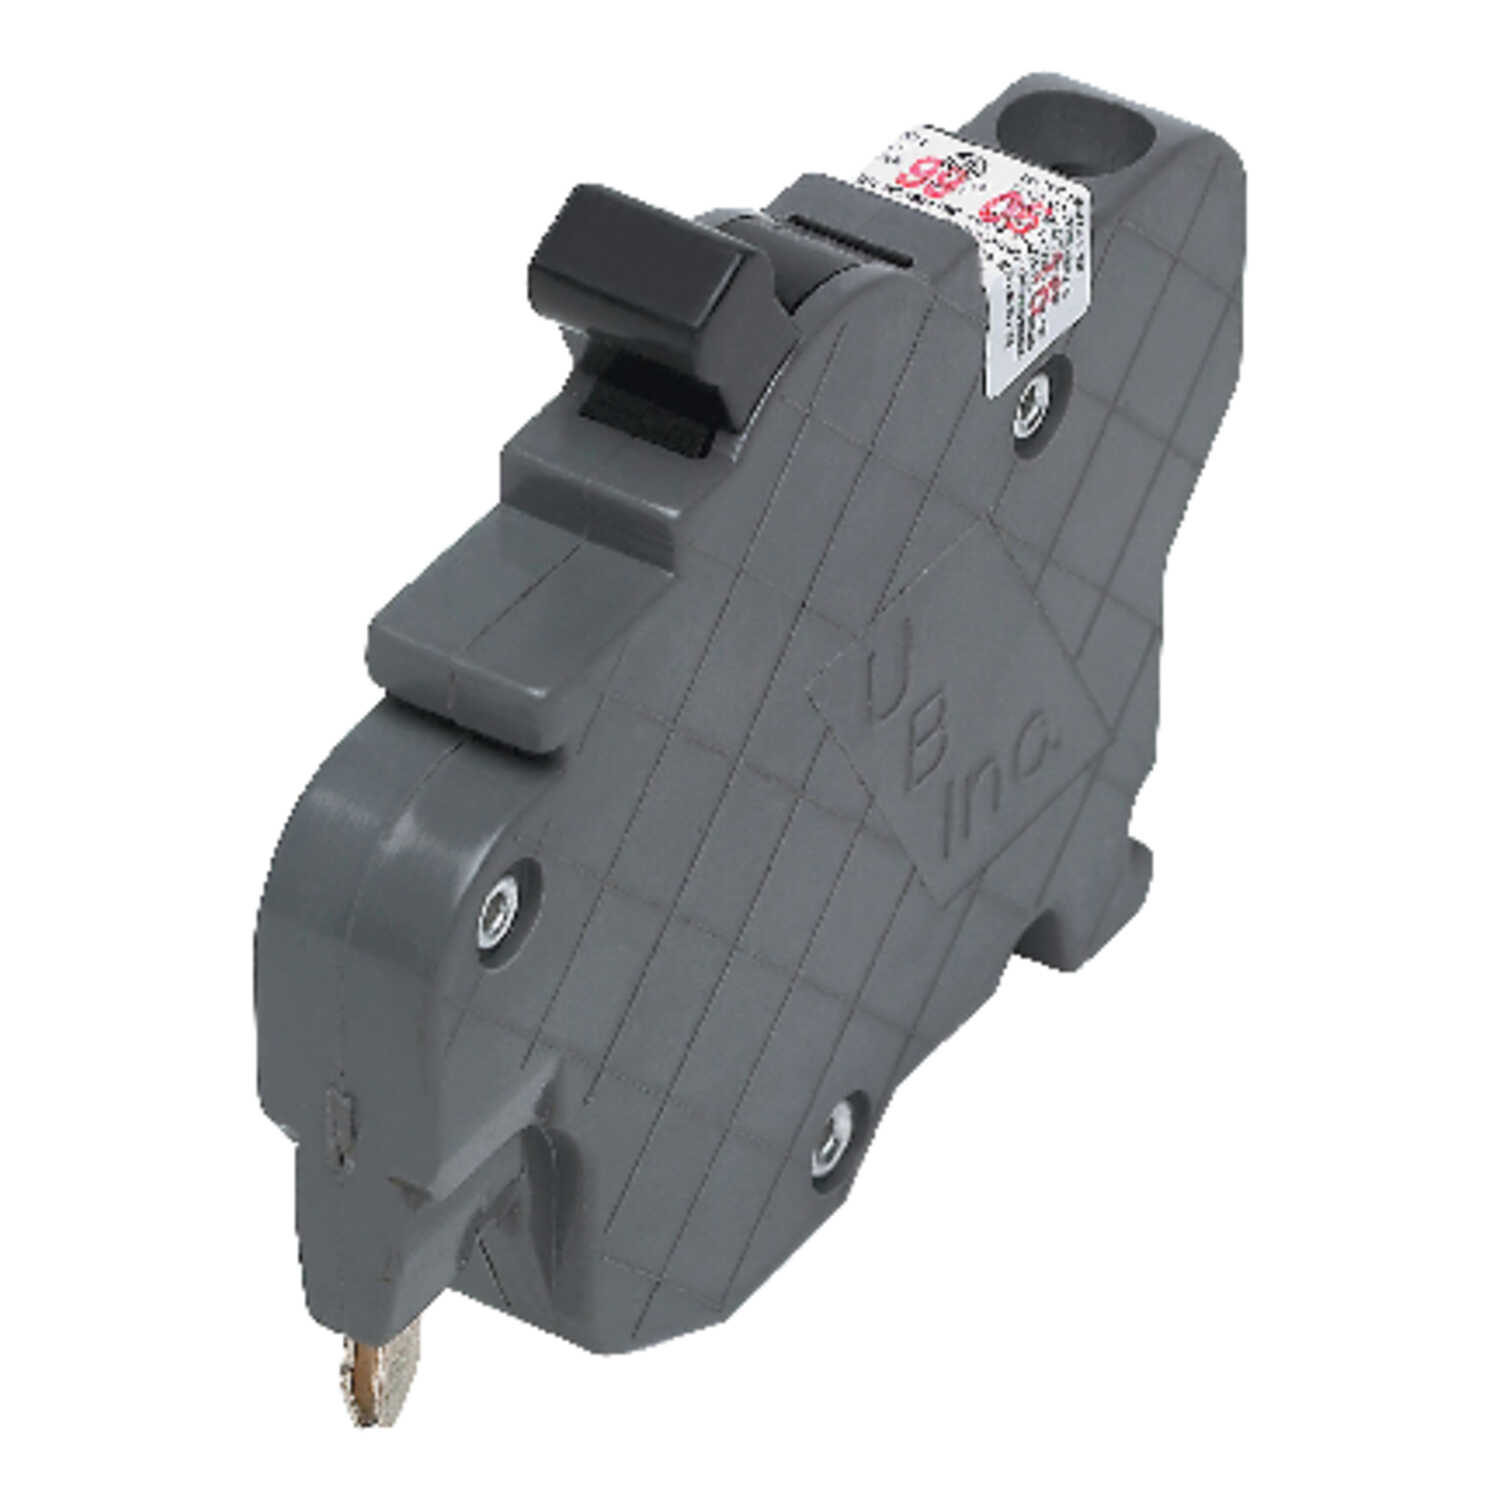 Federal Pacific  40 amps Standard  Single Pole  Circuit Breaker